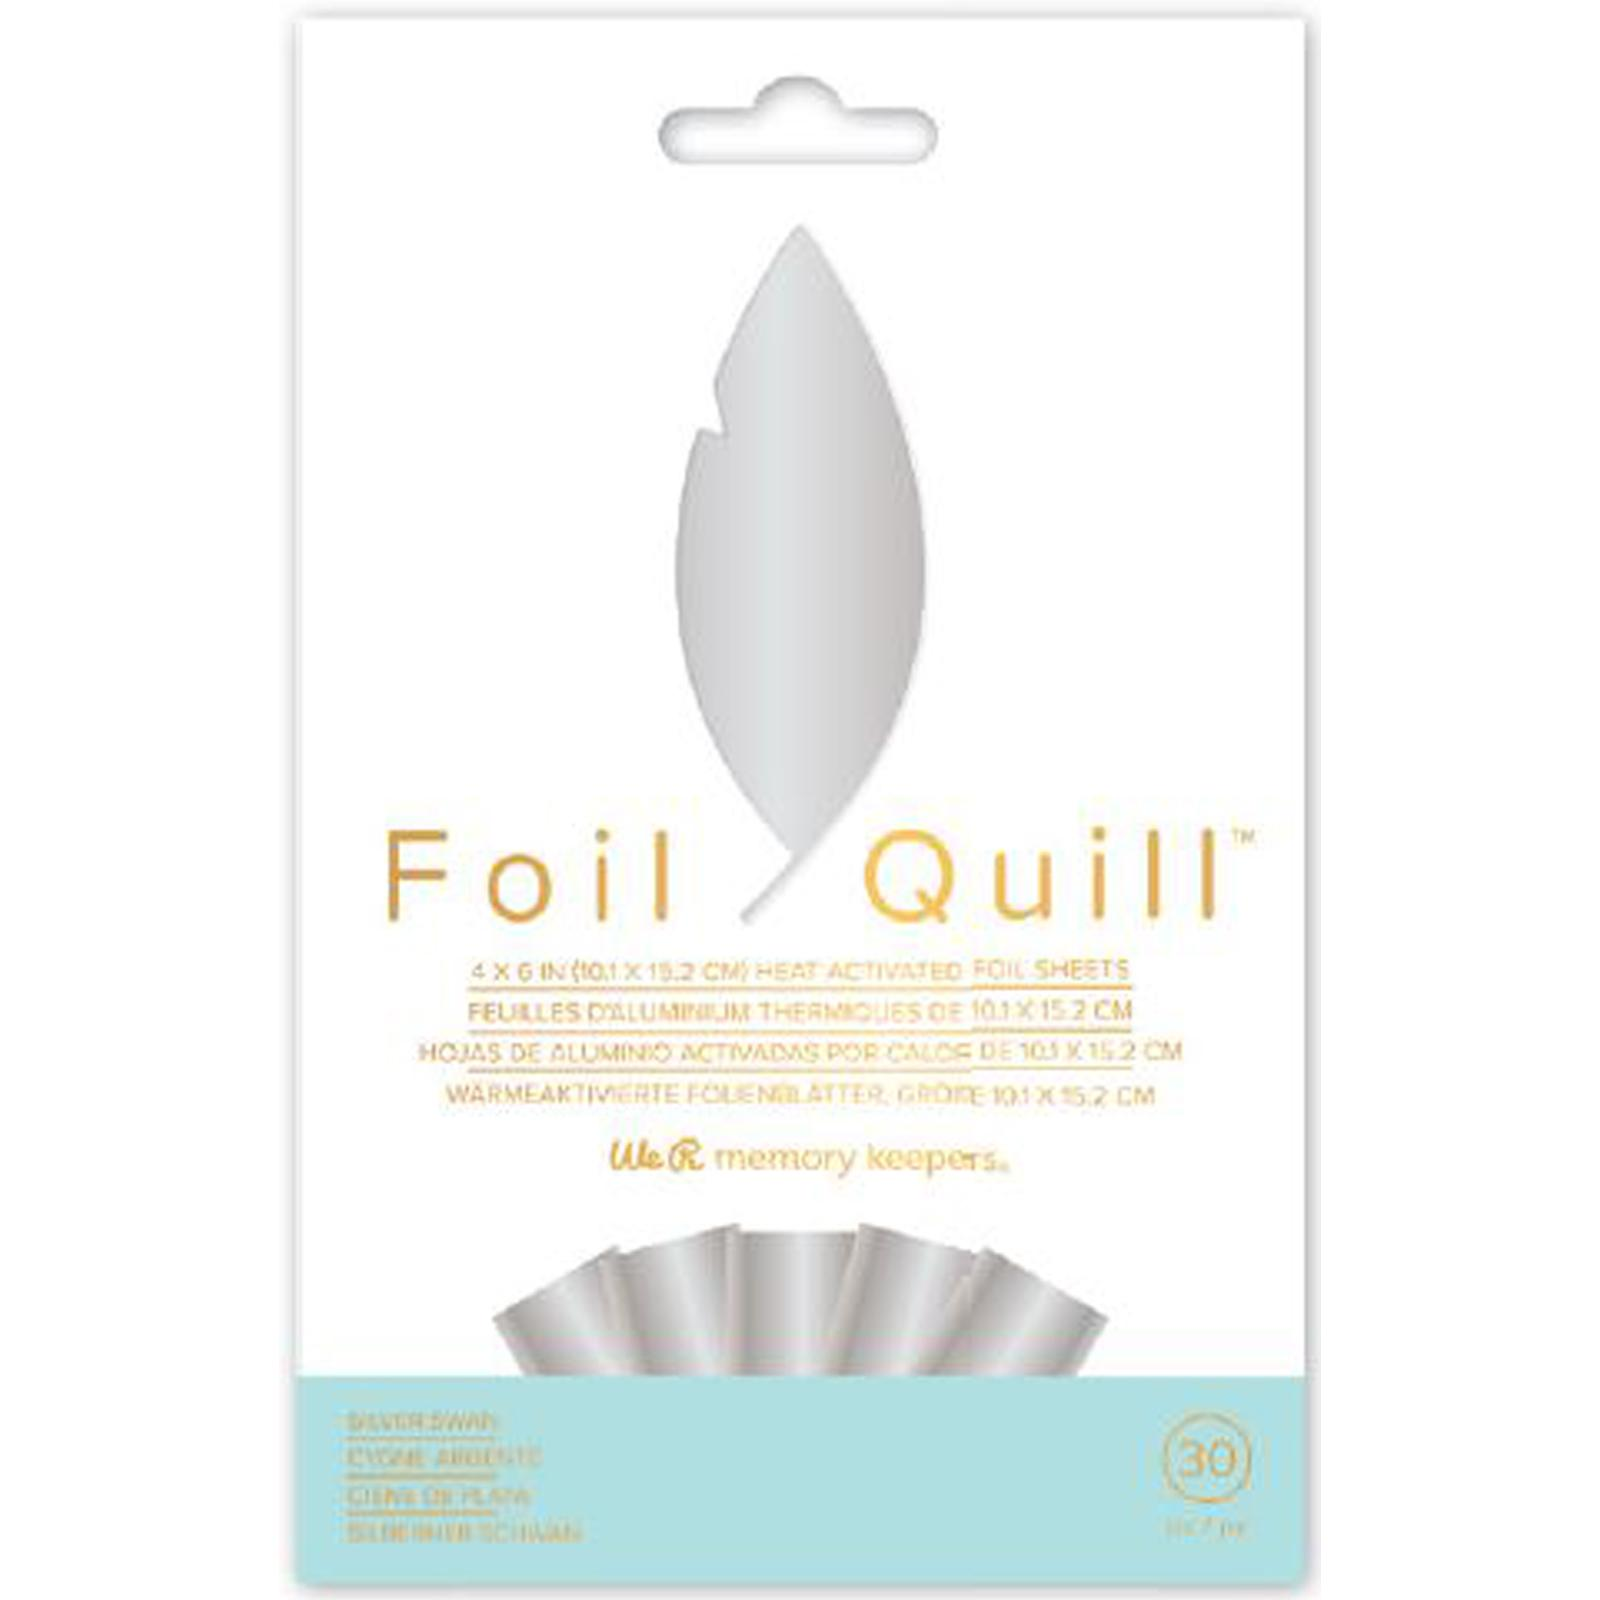 KIT HOJAS FOIL QUILL SILVER SWAN